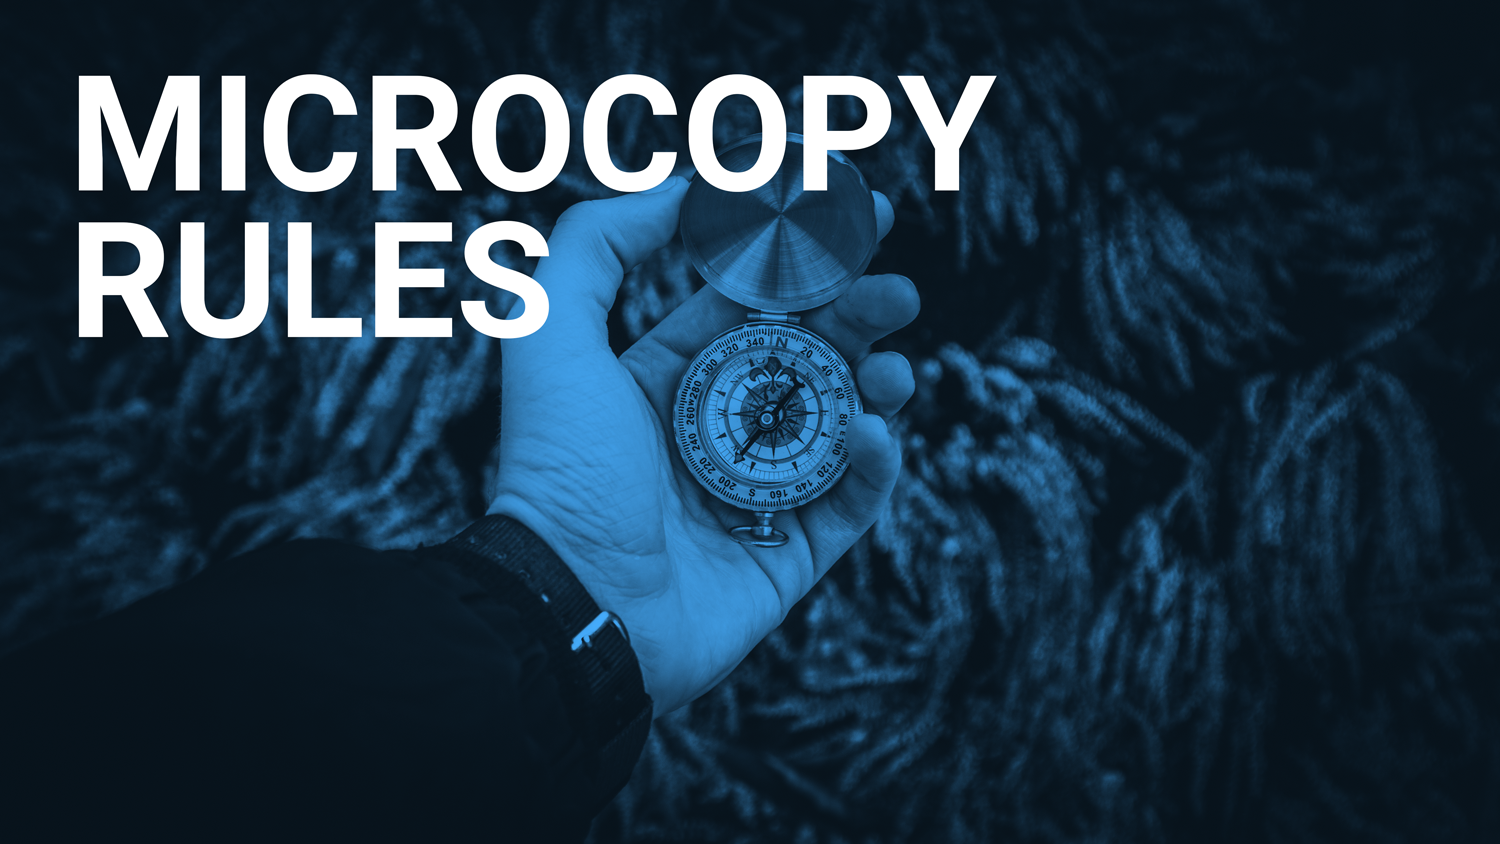 Microcopy Rules - Man holding compass showing the way